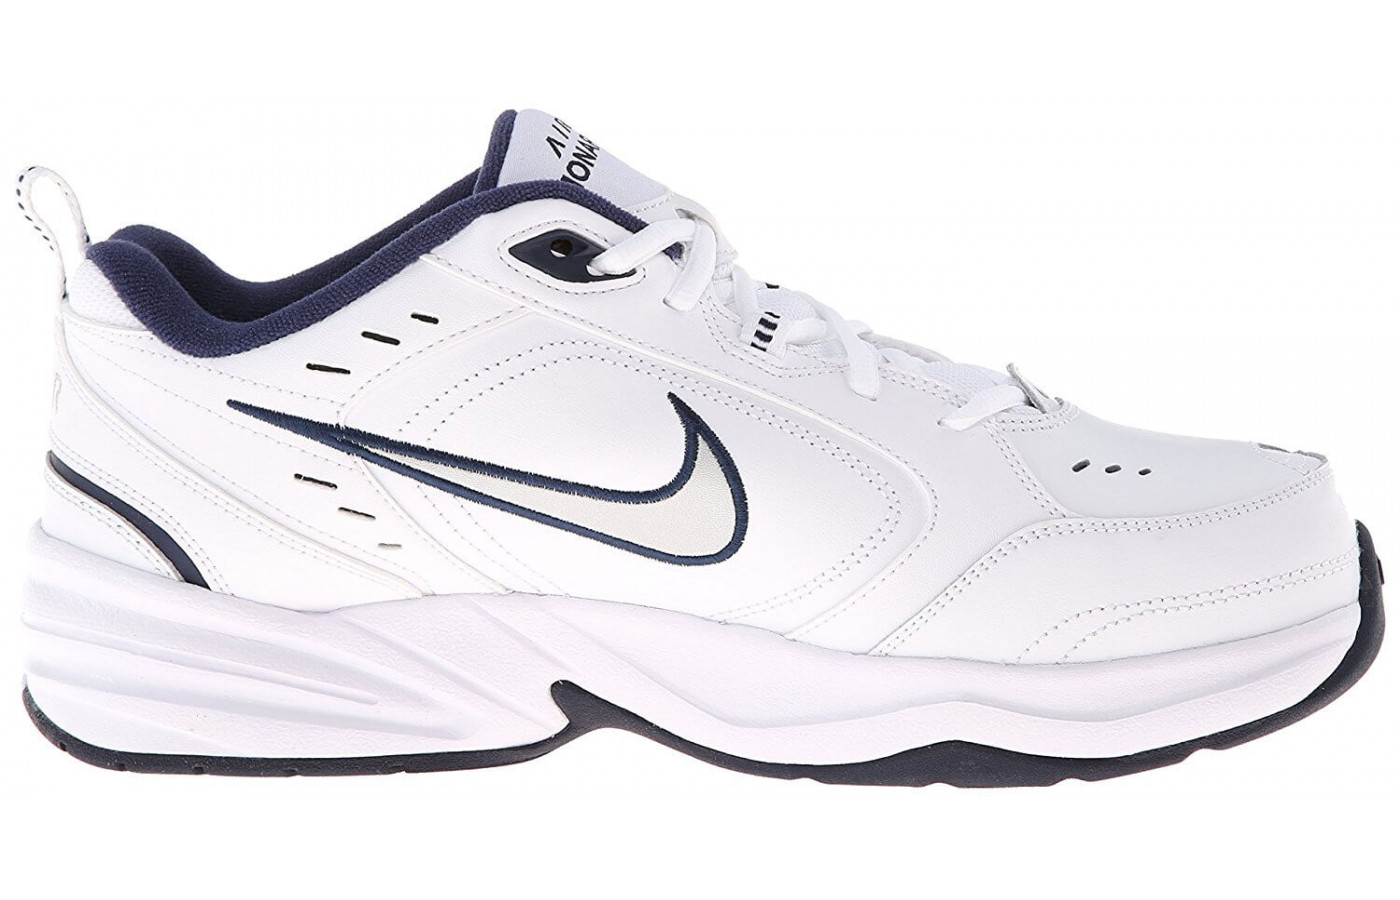 new style 93aa8 d51ef ... Nike Air Monarch IV Right ...